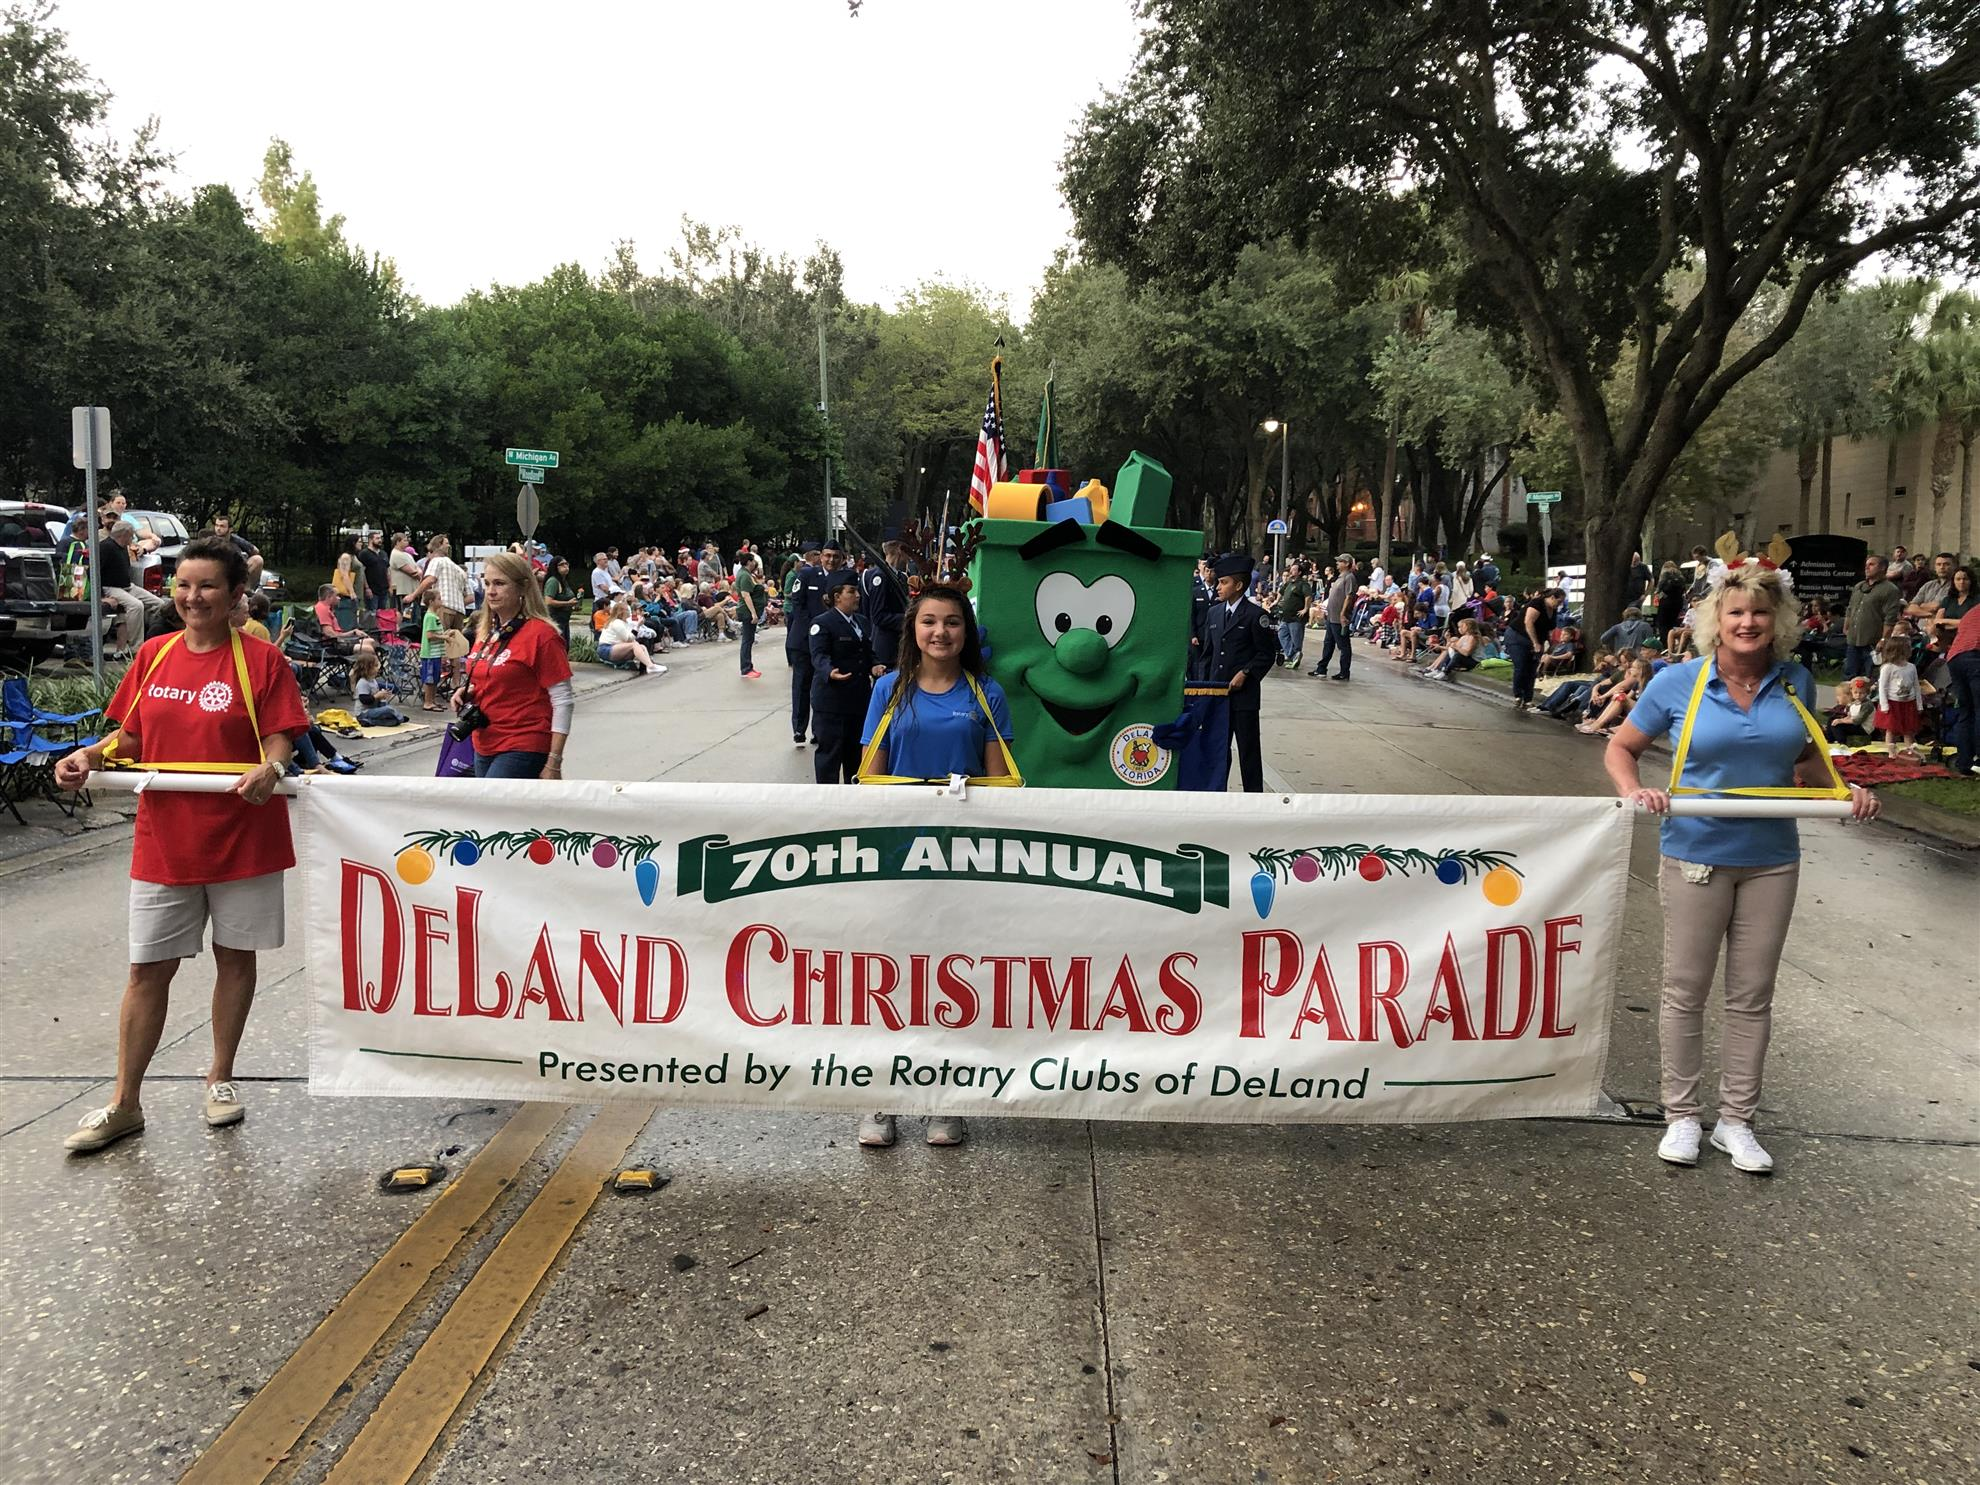 Deland Christmas Parade 2020 70th Annual DeLand Rotary Christmas Parade | DeLand Breakfast